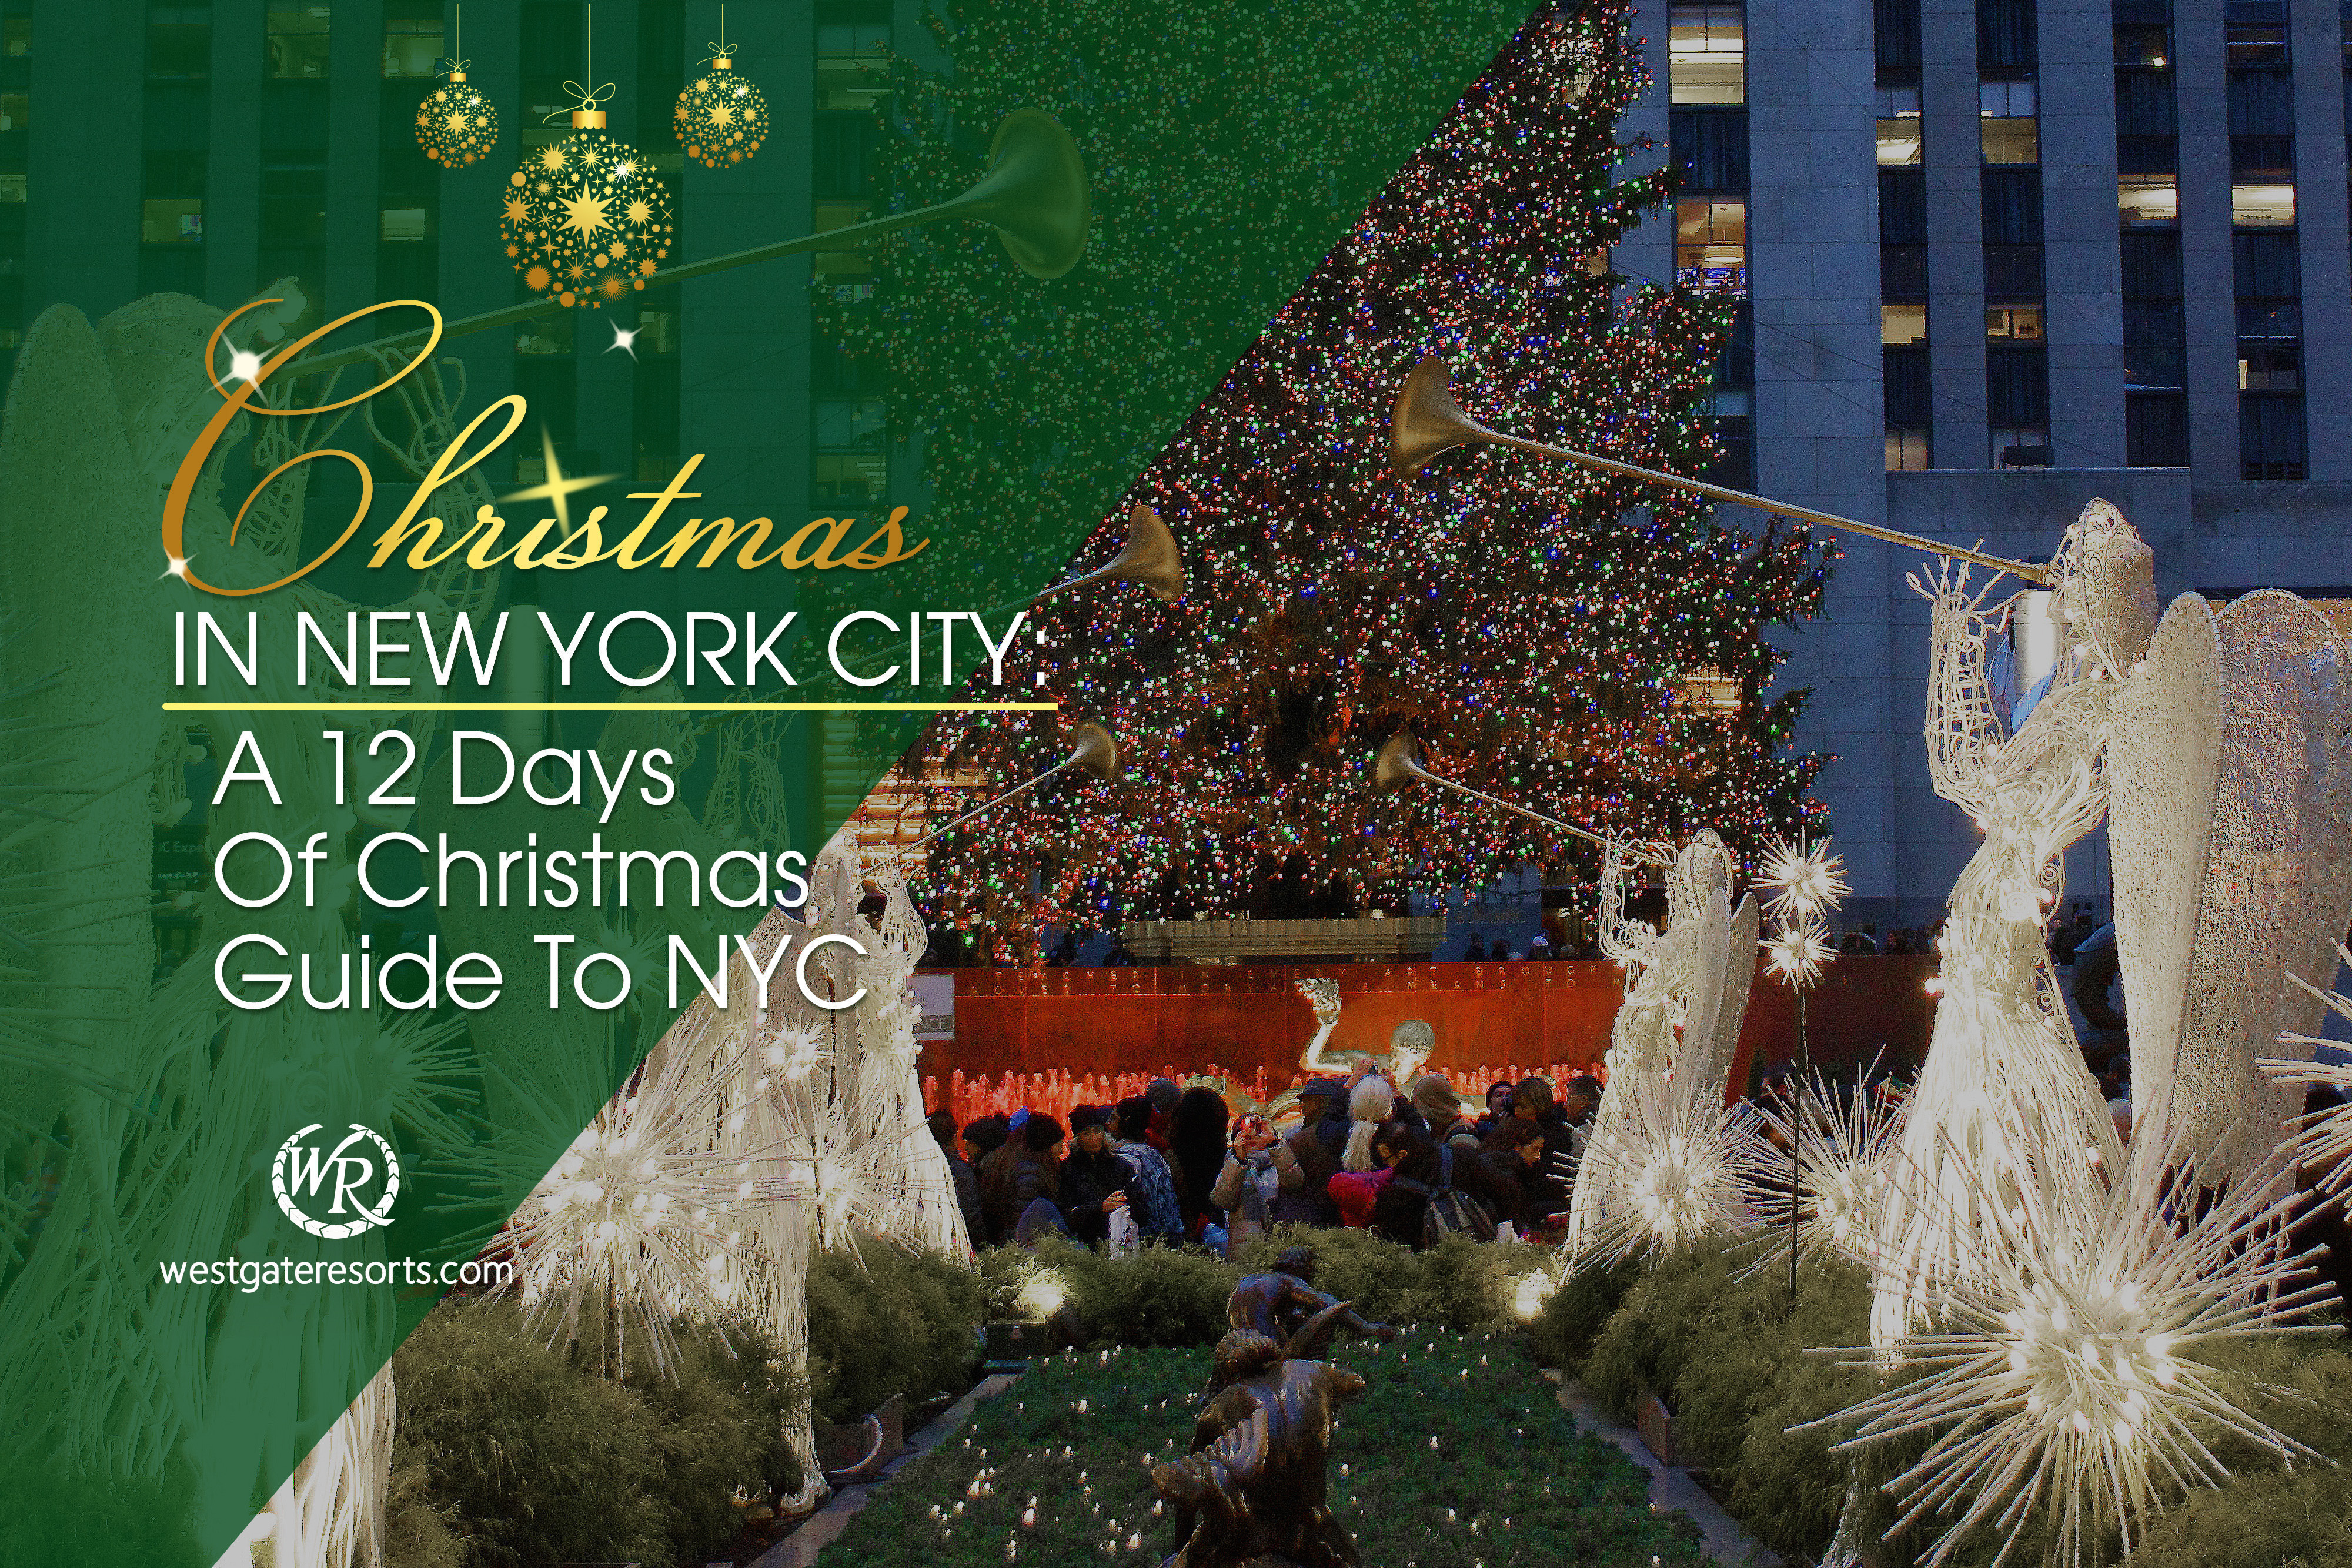 Christmas in New York City: A 12 Days Of Christmas Guide To NYC